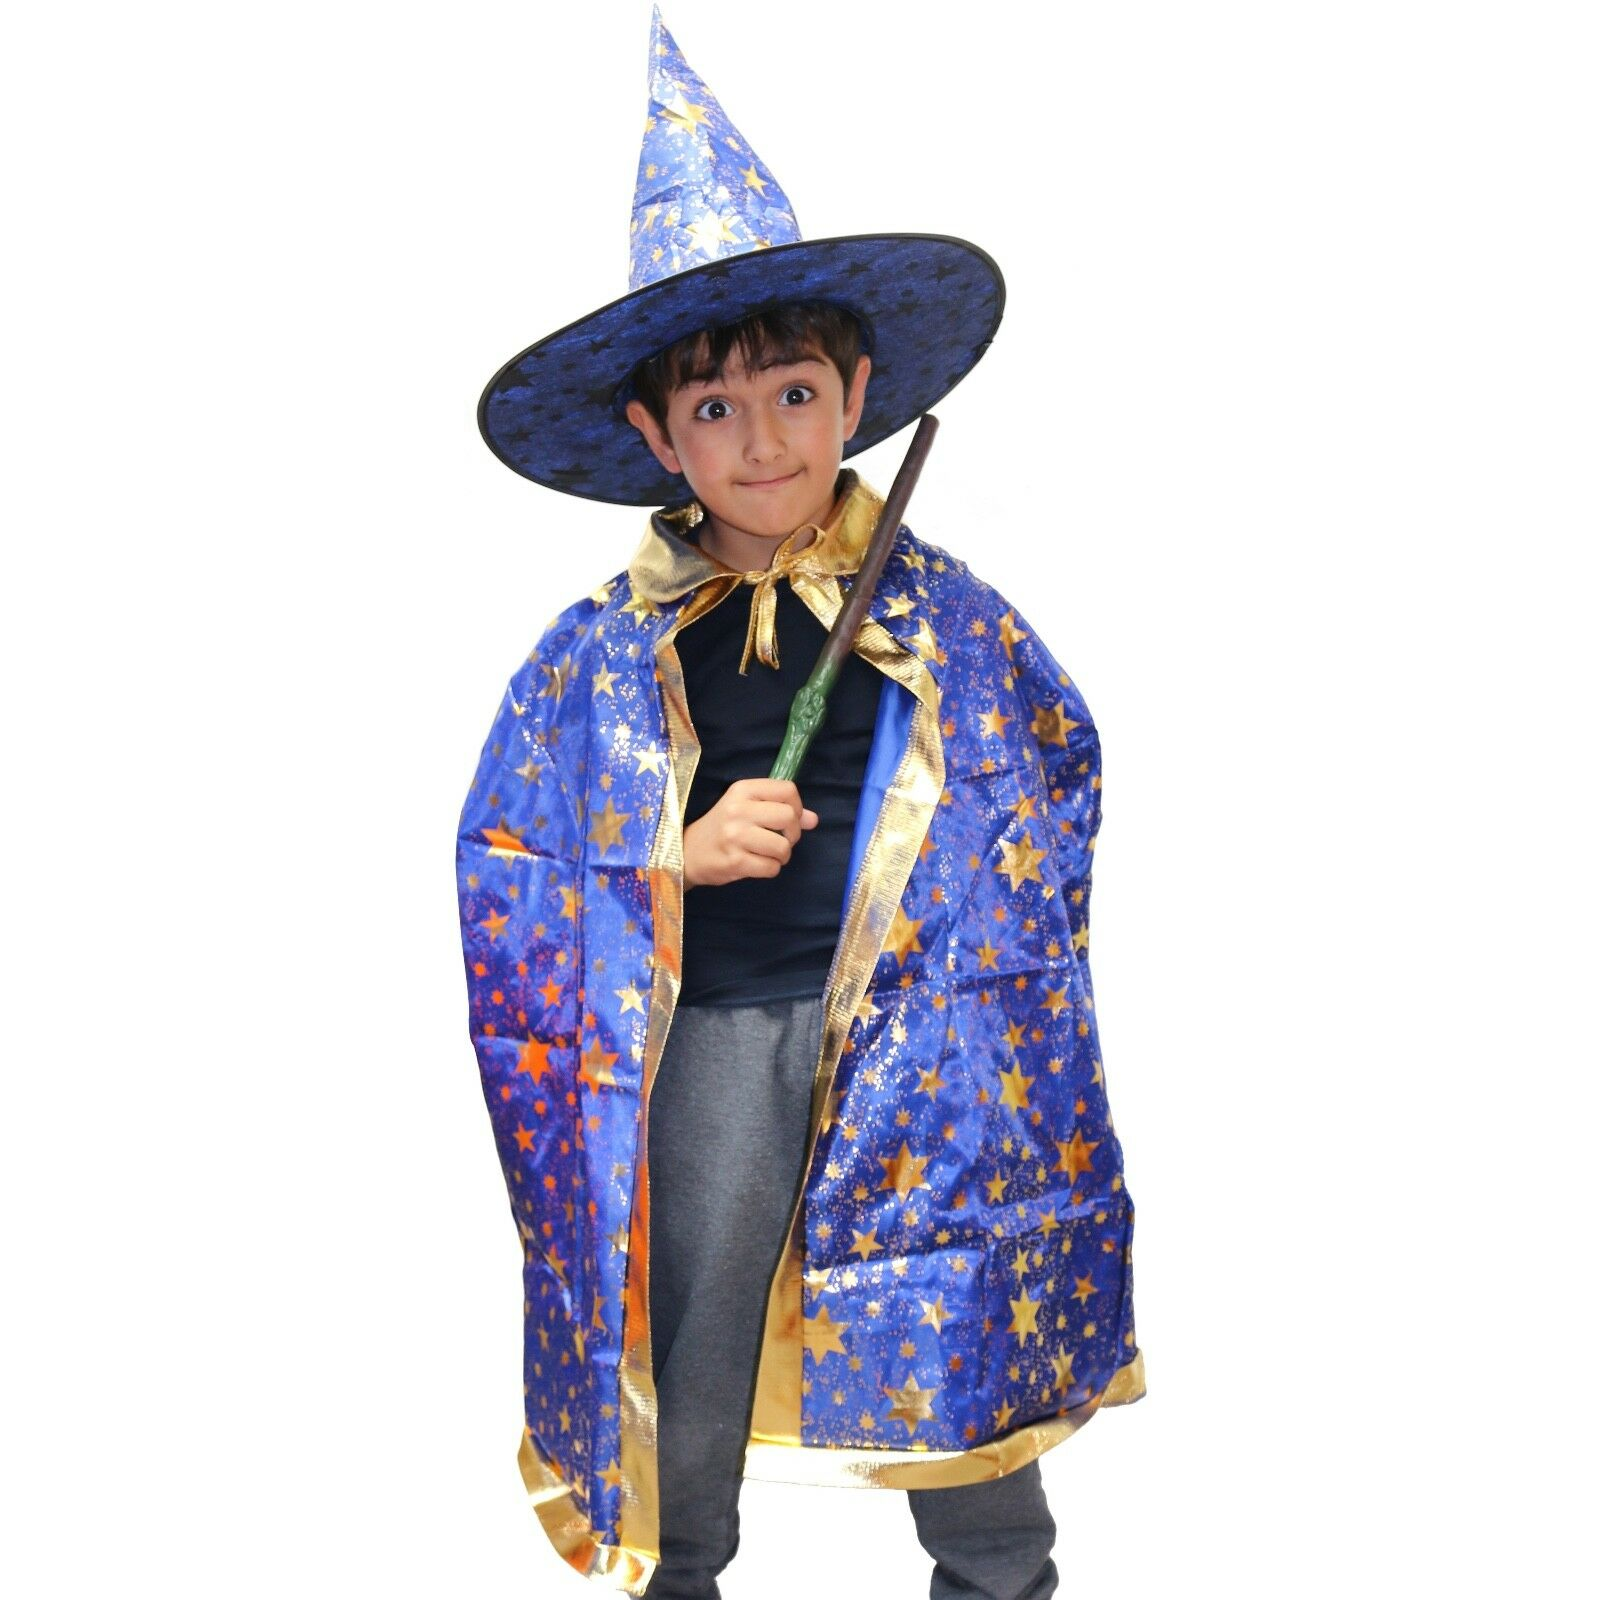 WORLD BOOK DAY//Potter//Wizard DUMBLEDORE Complete Fancy Dress Costume All ages